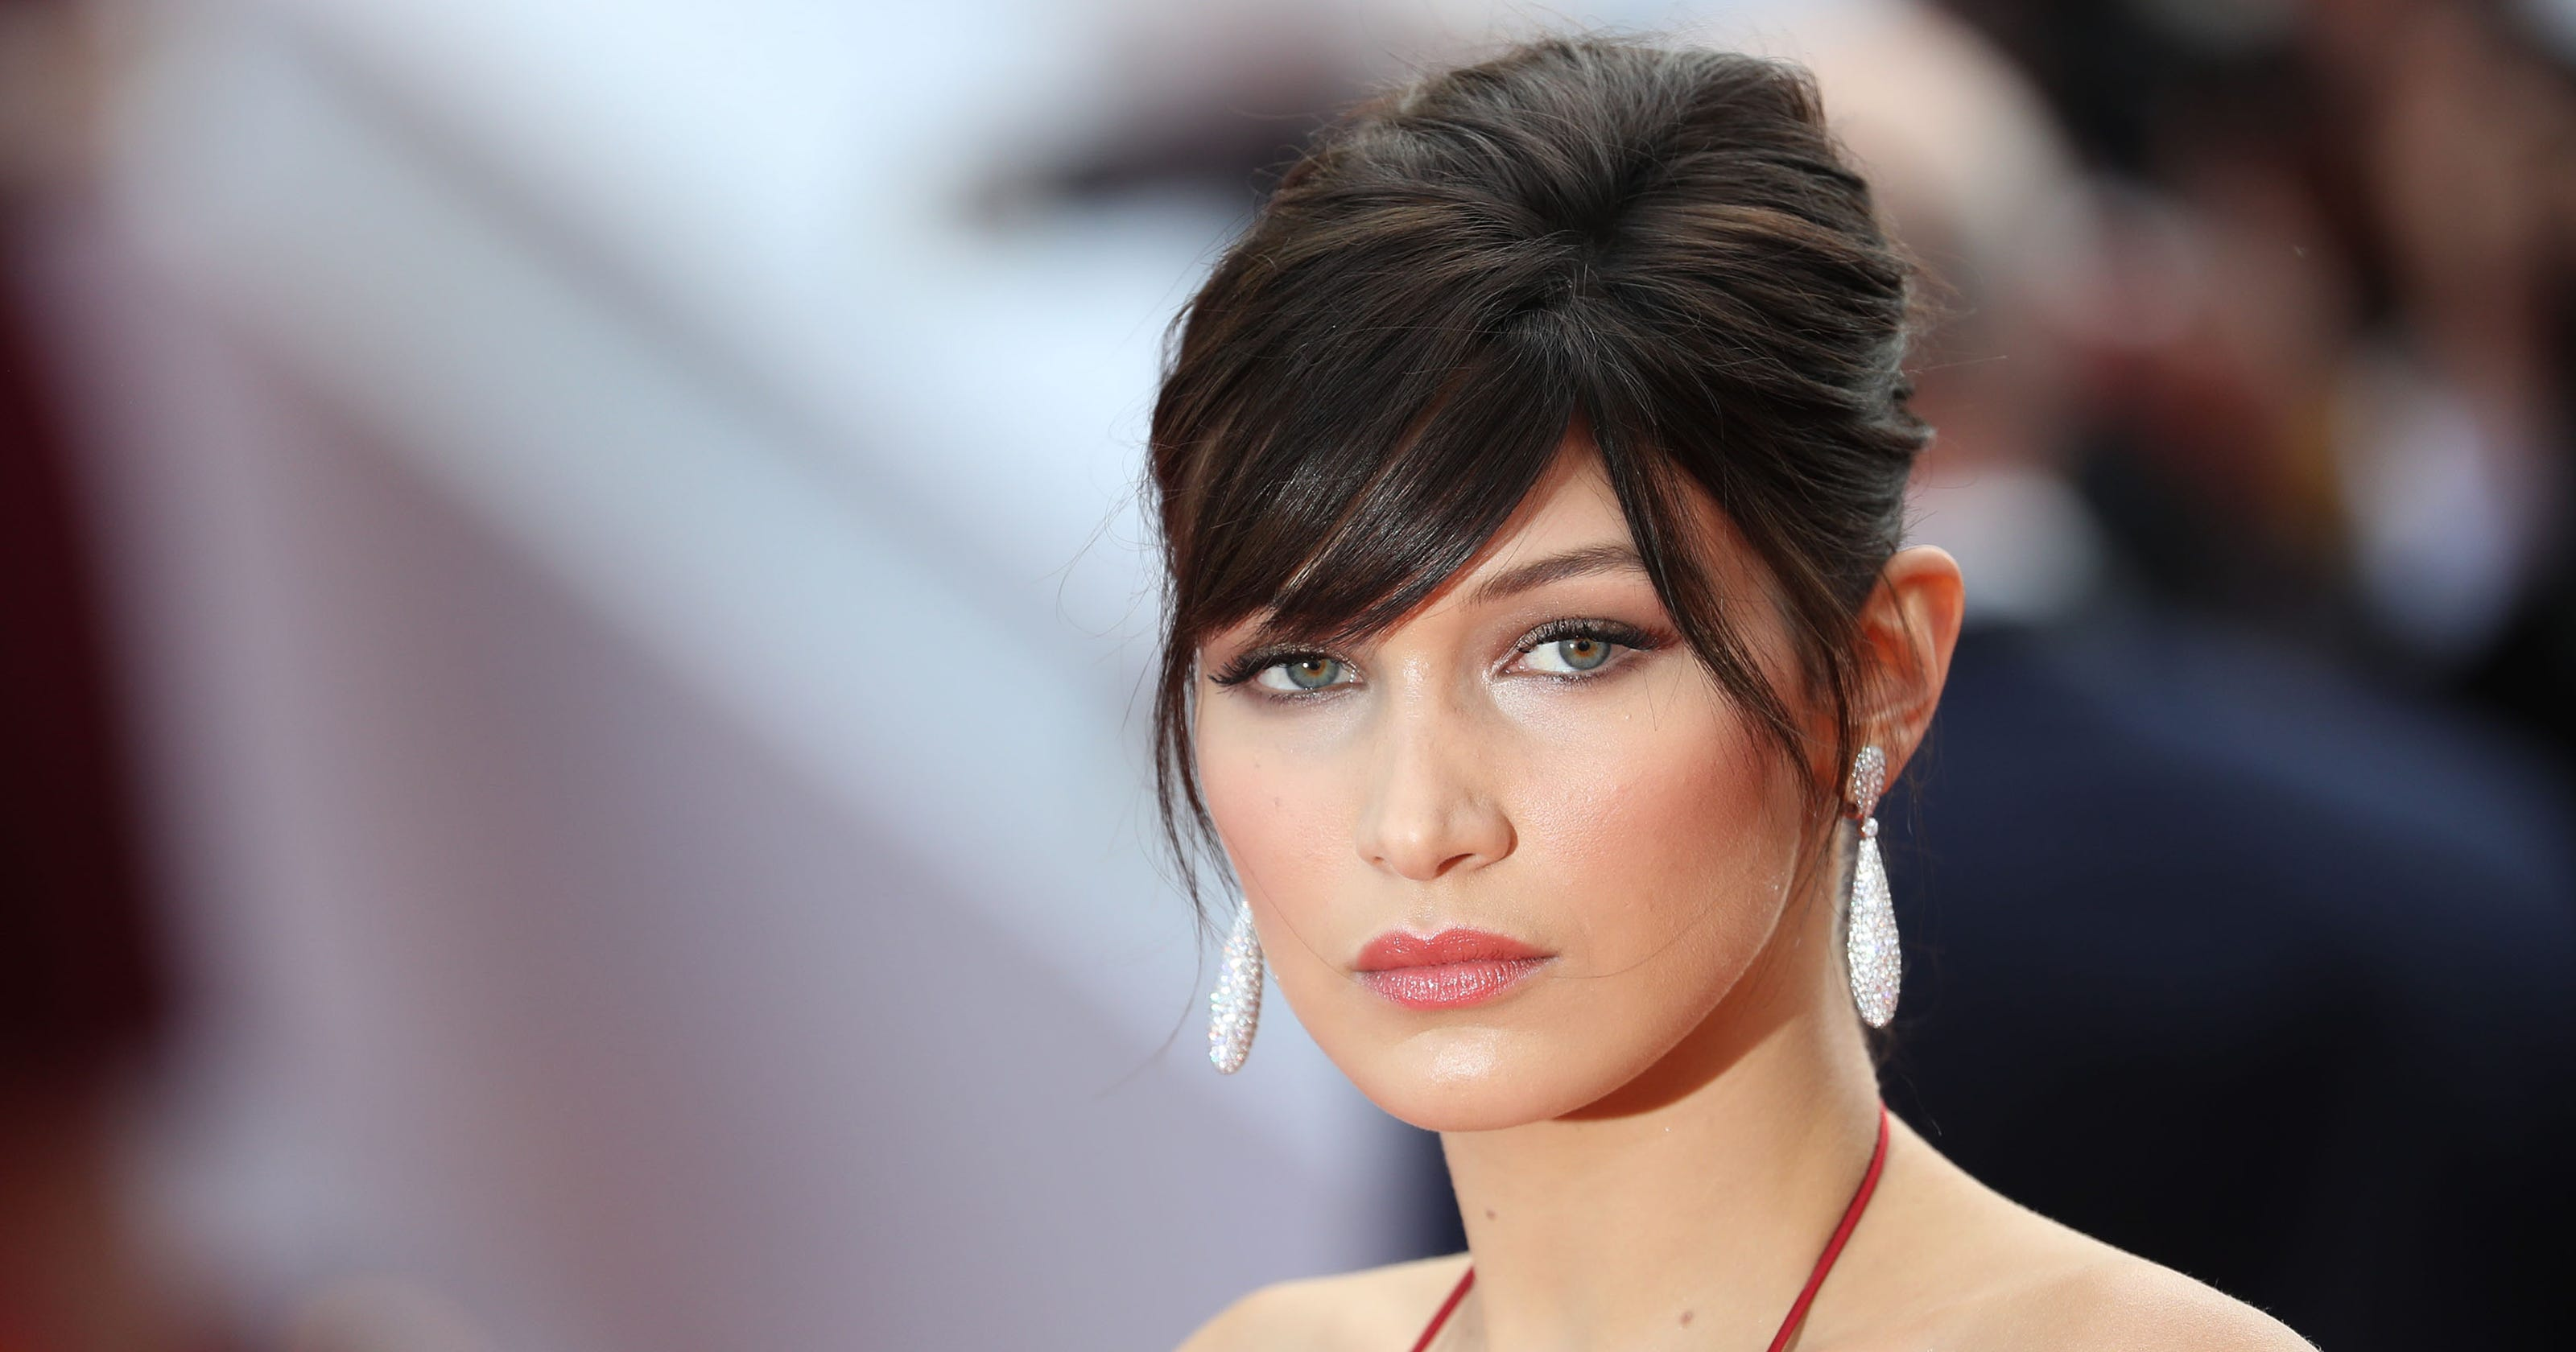 ae1e83567ead Here's what Bella Hadid looks like with pink hair